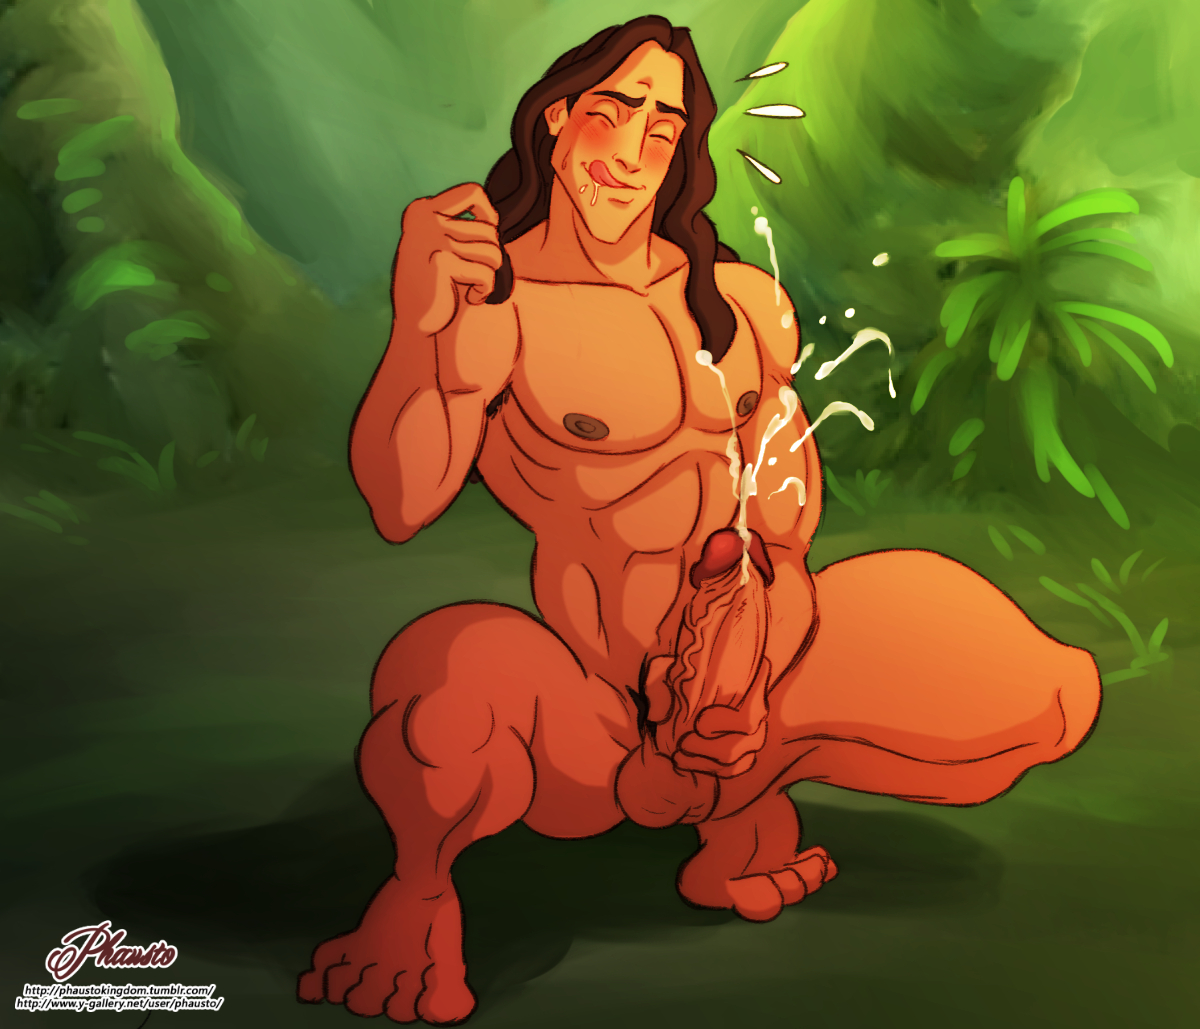 Tarzan and jane's hot jungle games